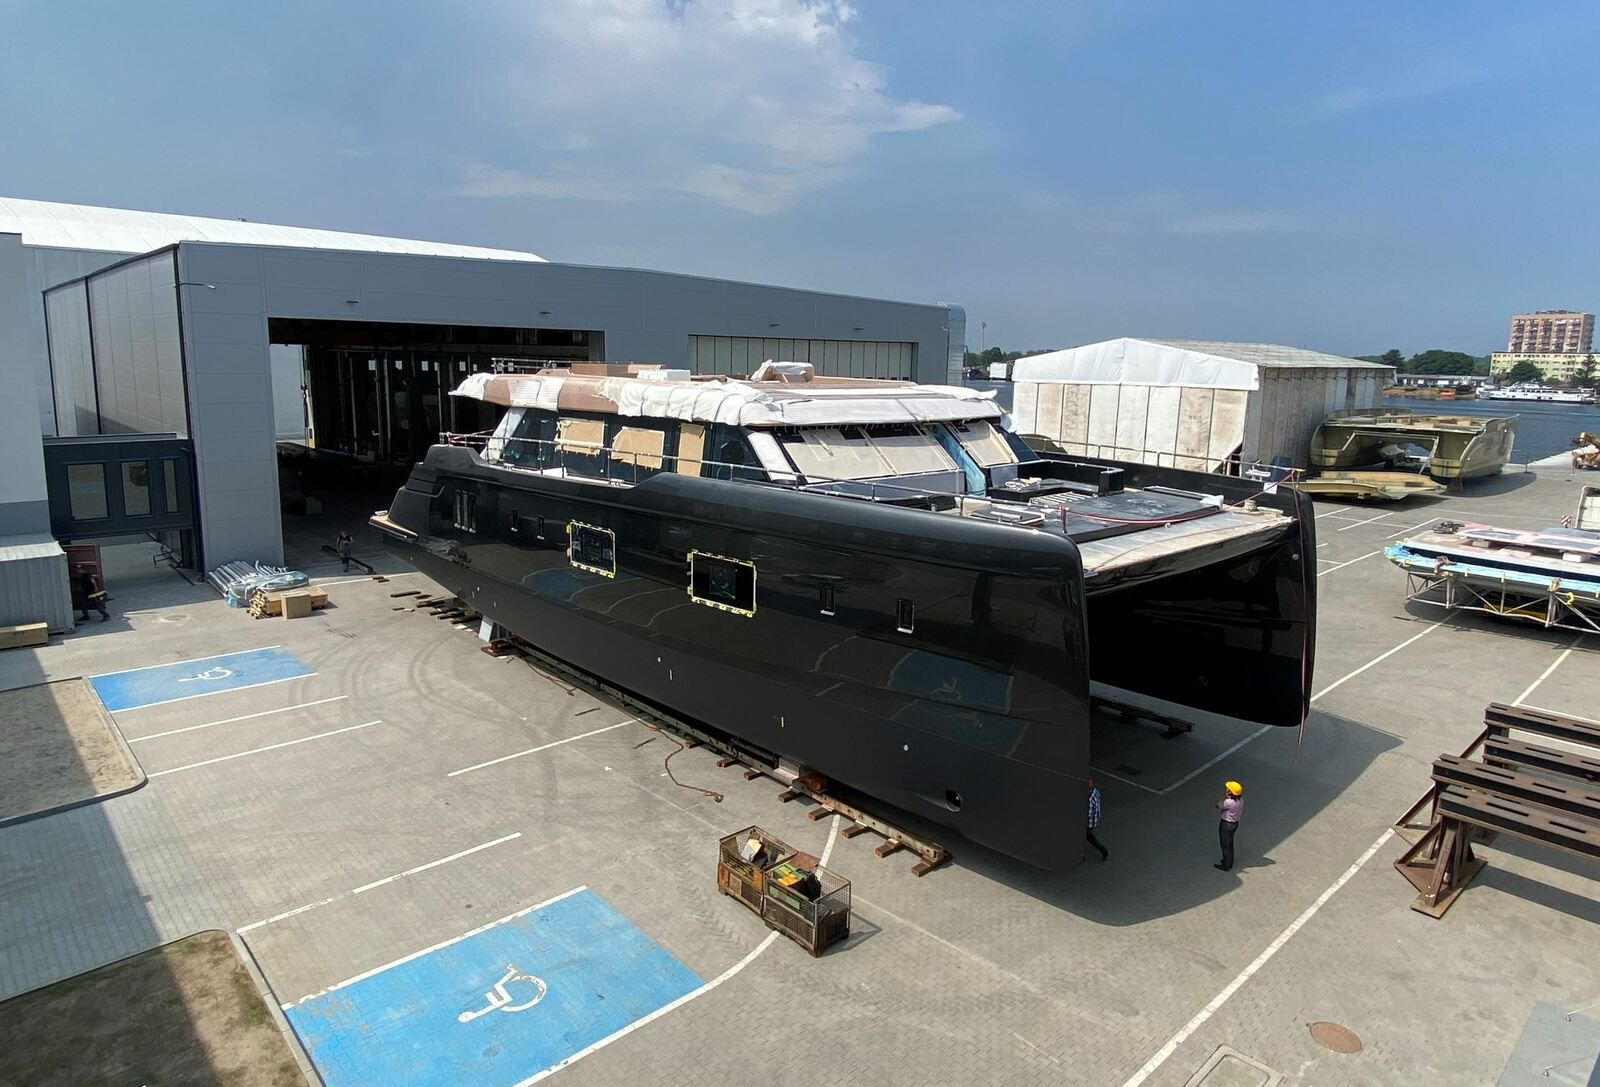 Scoop - first pictures of the first 100 Sunreef Power